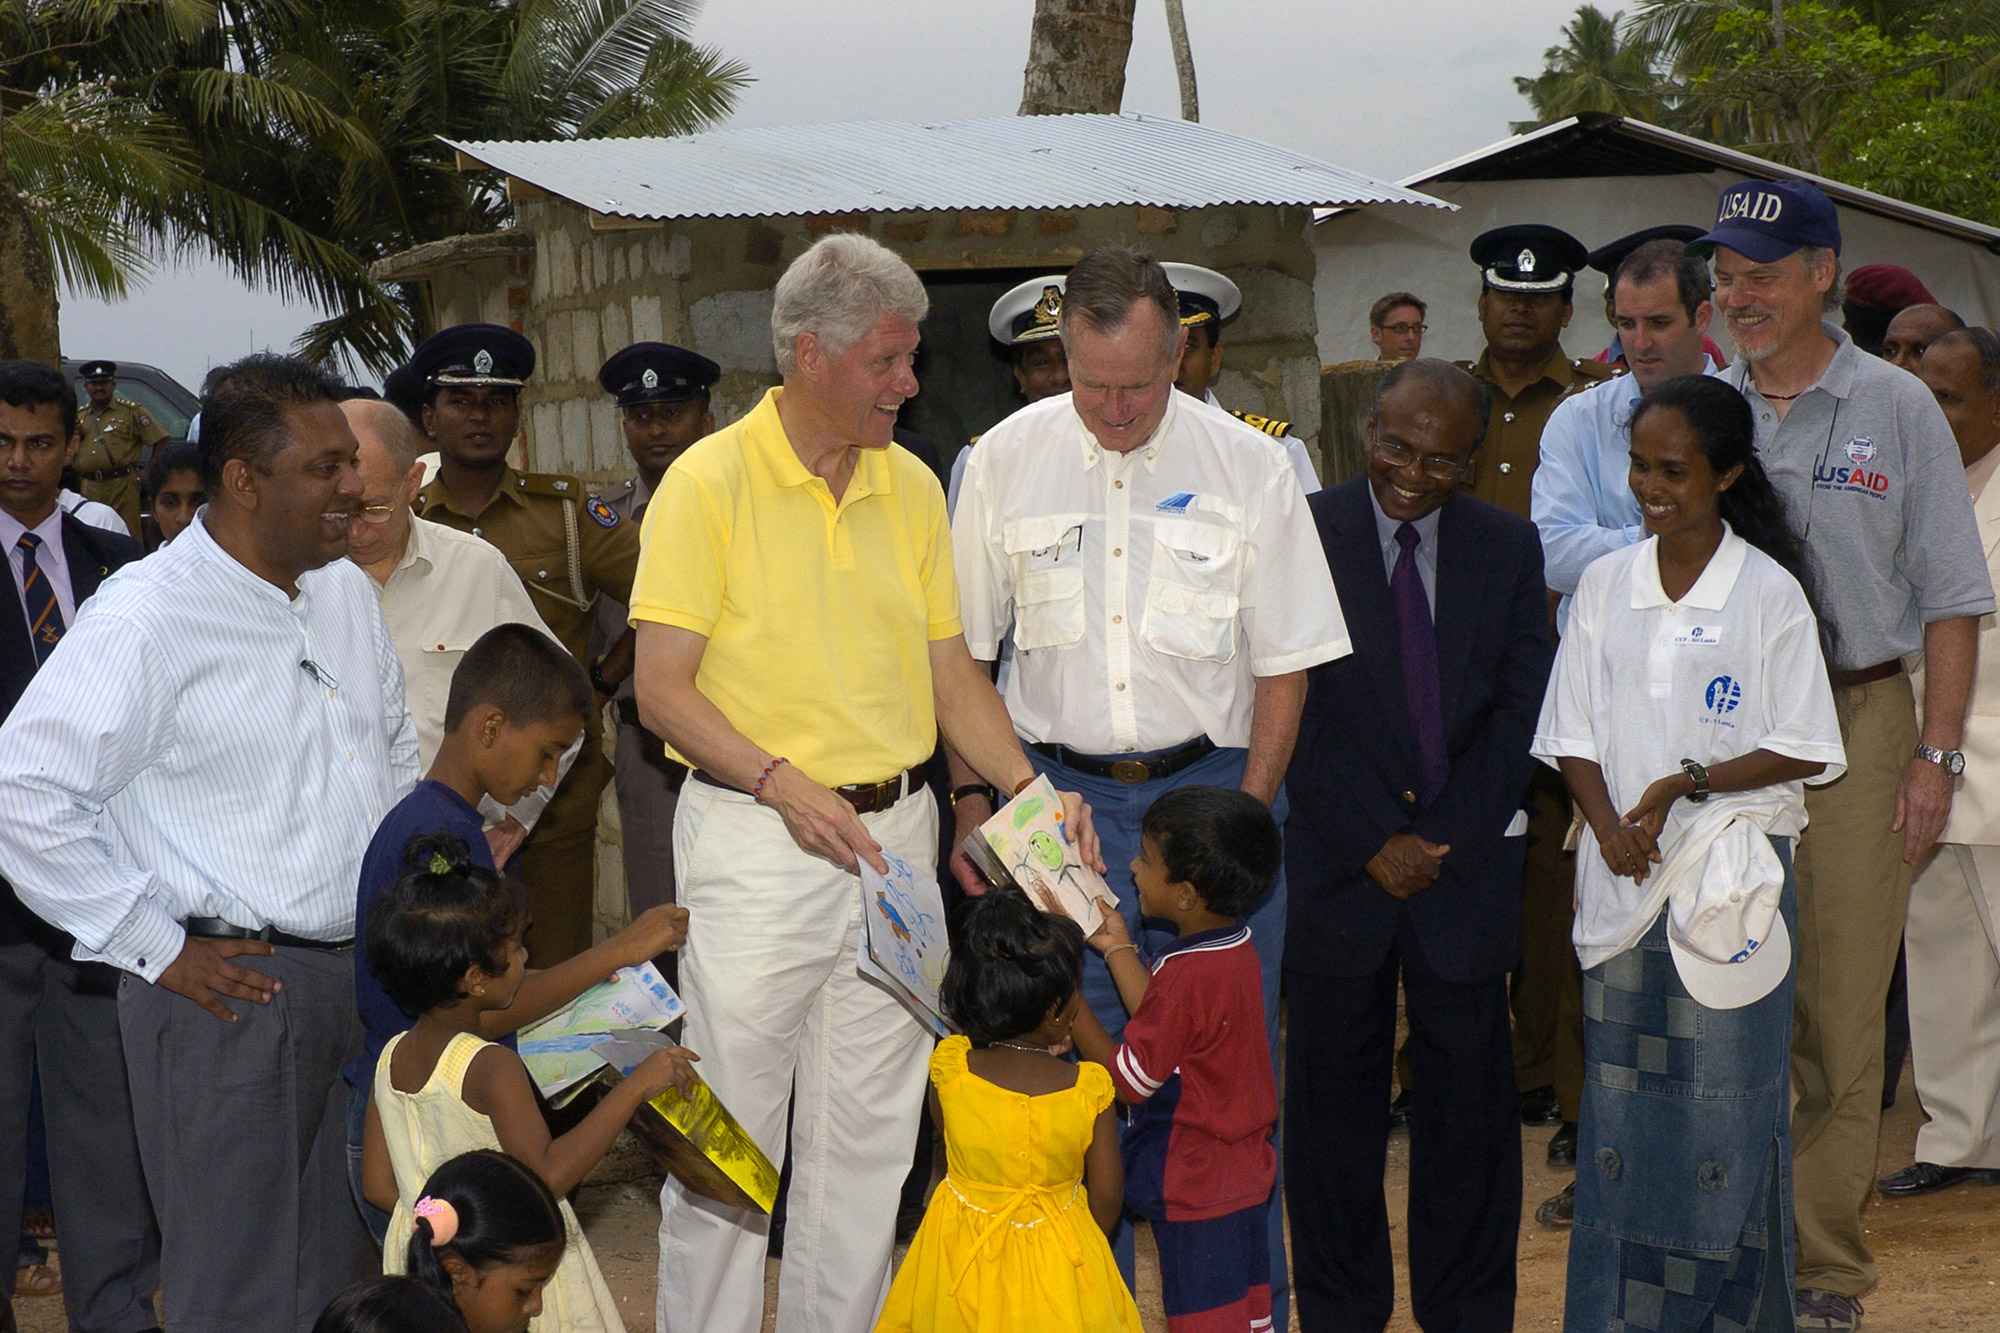 Presidents Bush and Clinton visit with children in Indonesia during their trip in February 2005 after the tsunami that ravaged large parts of Asia.